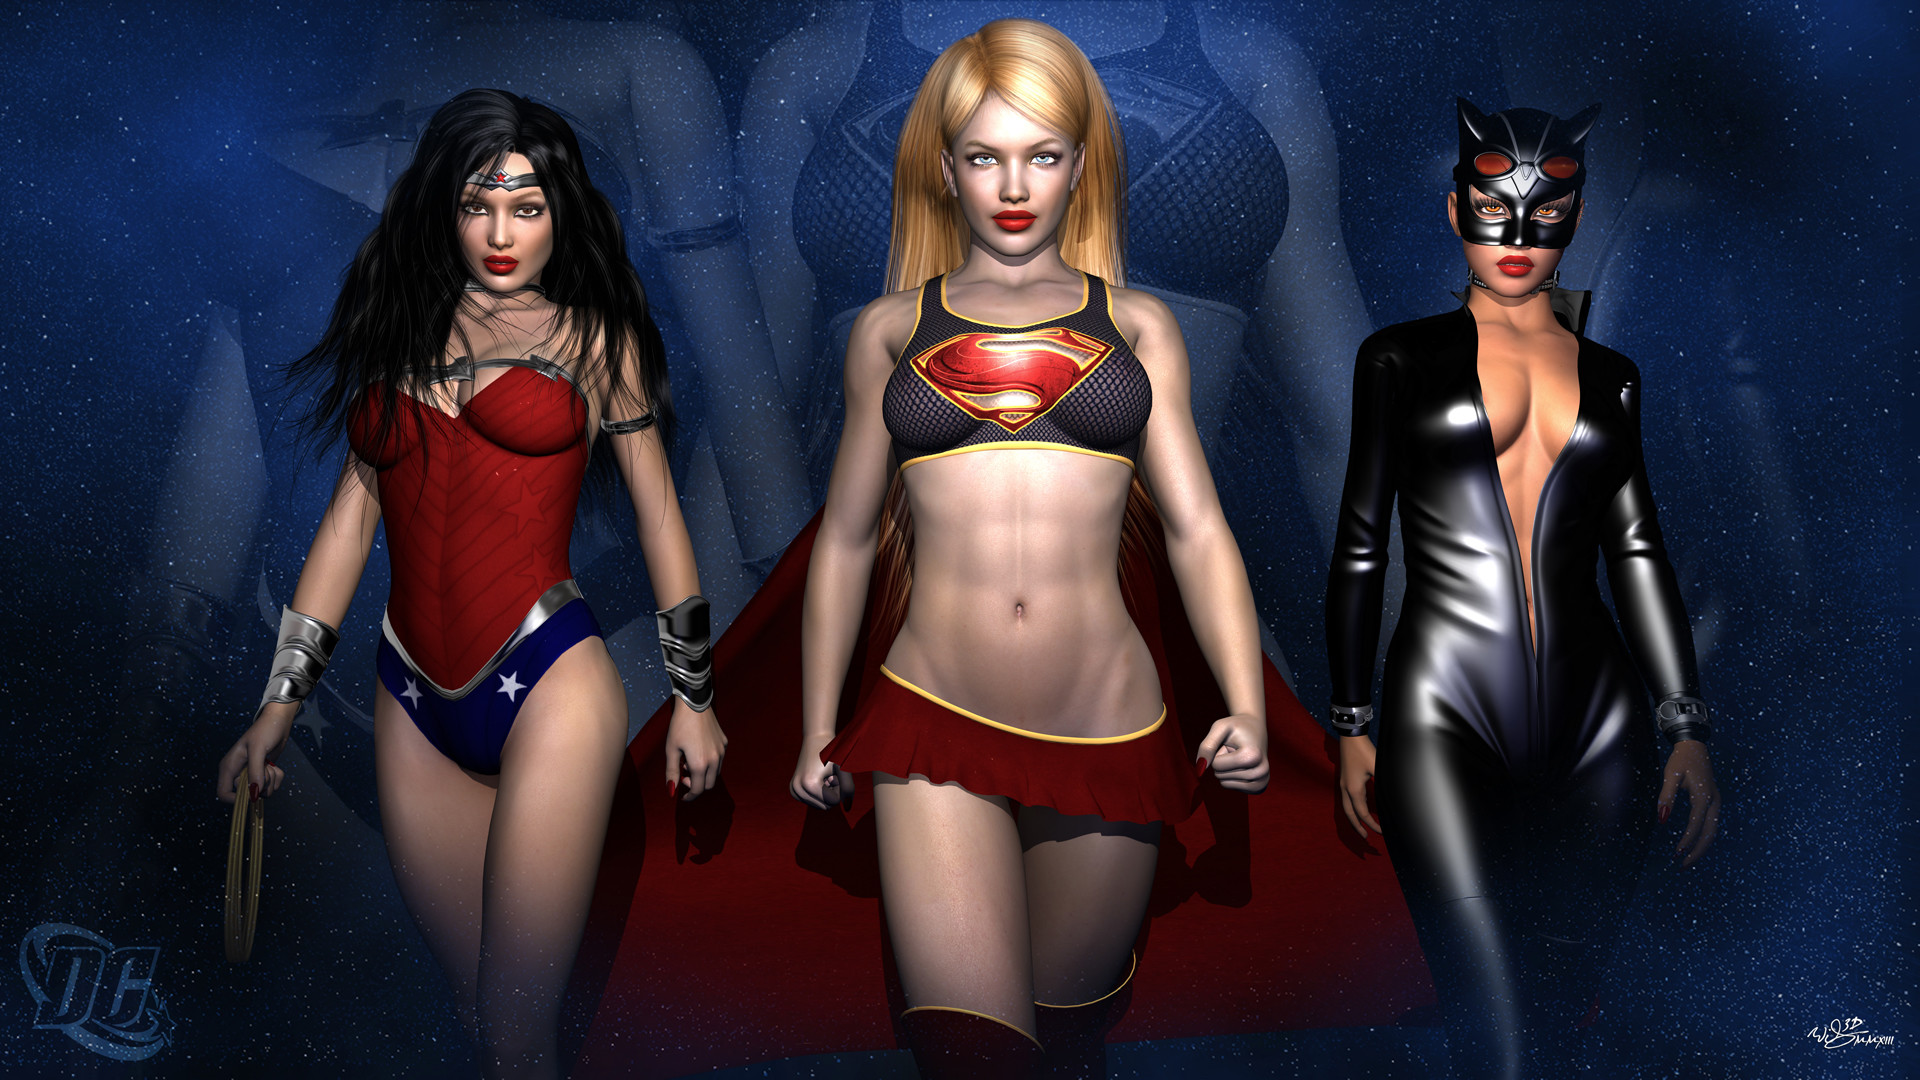 Res: 1920x1080, DC Girls Wallpaper by WiL3D DC Girls Wallpaper by WiL3D